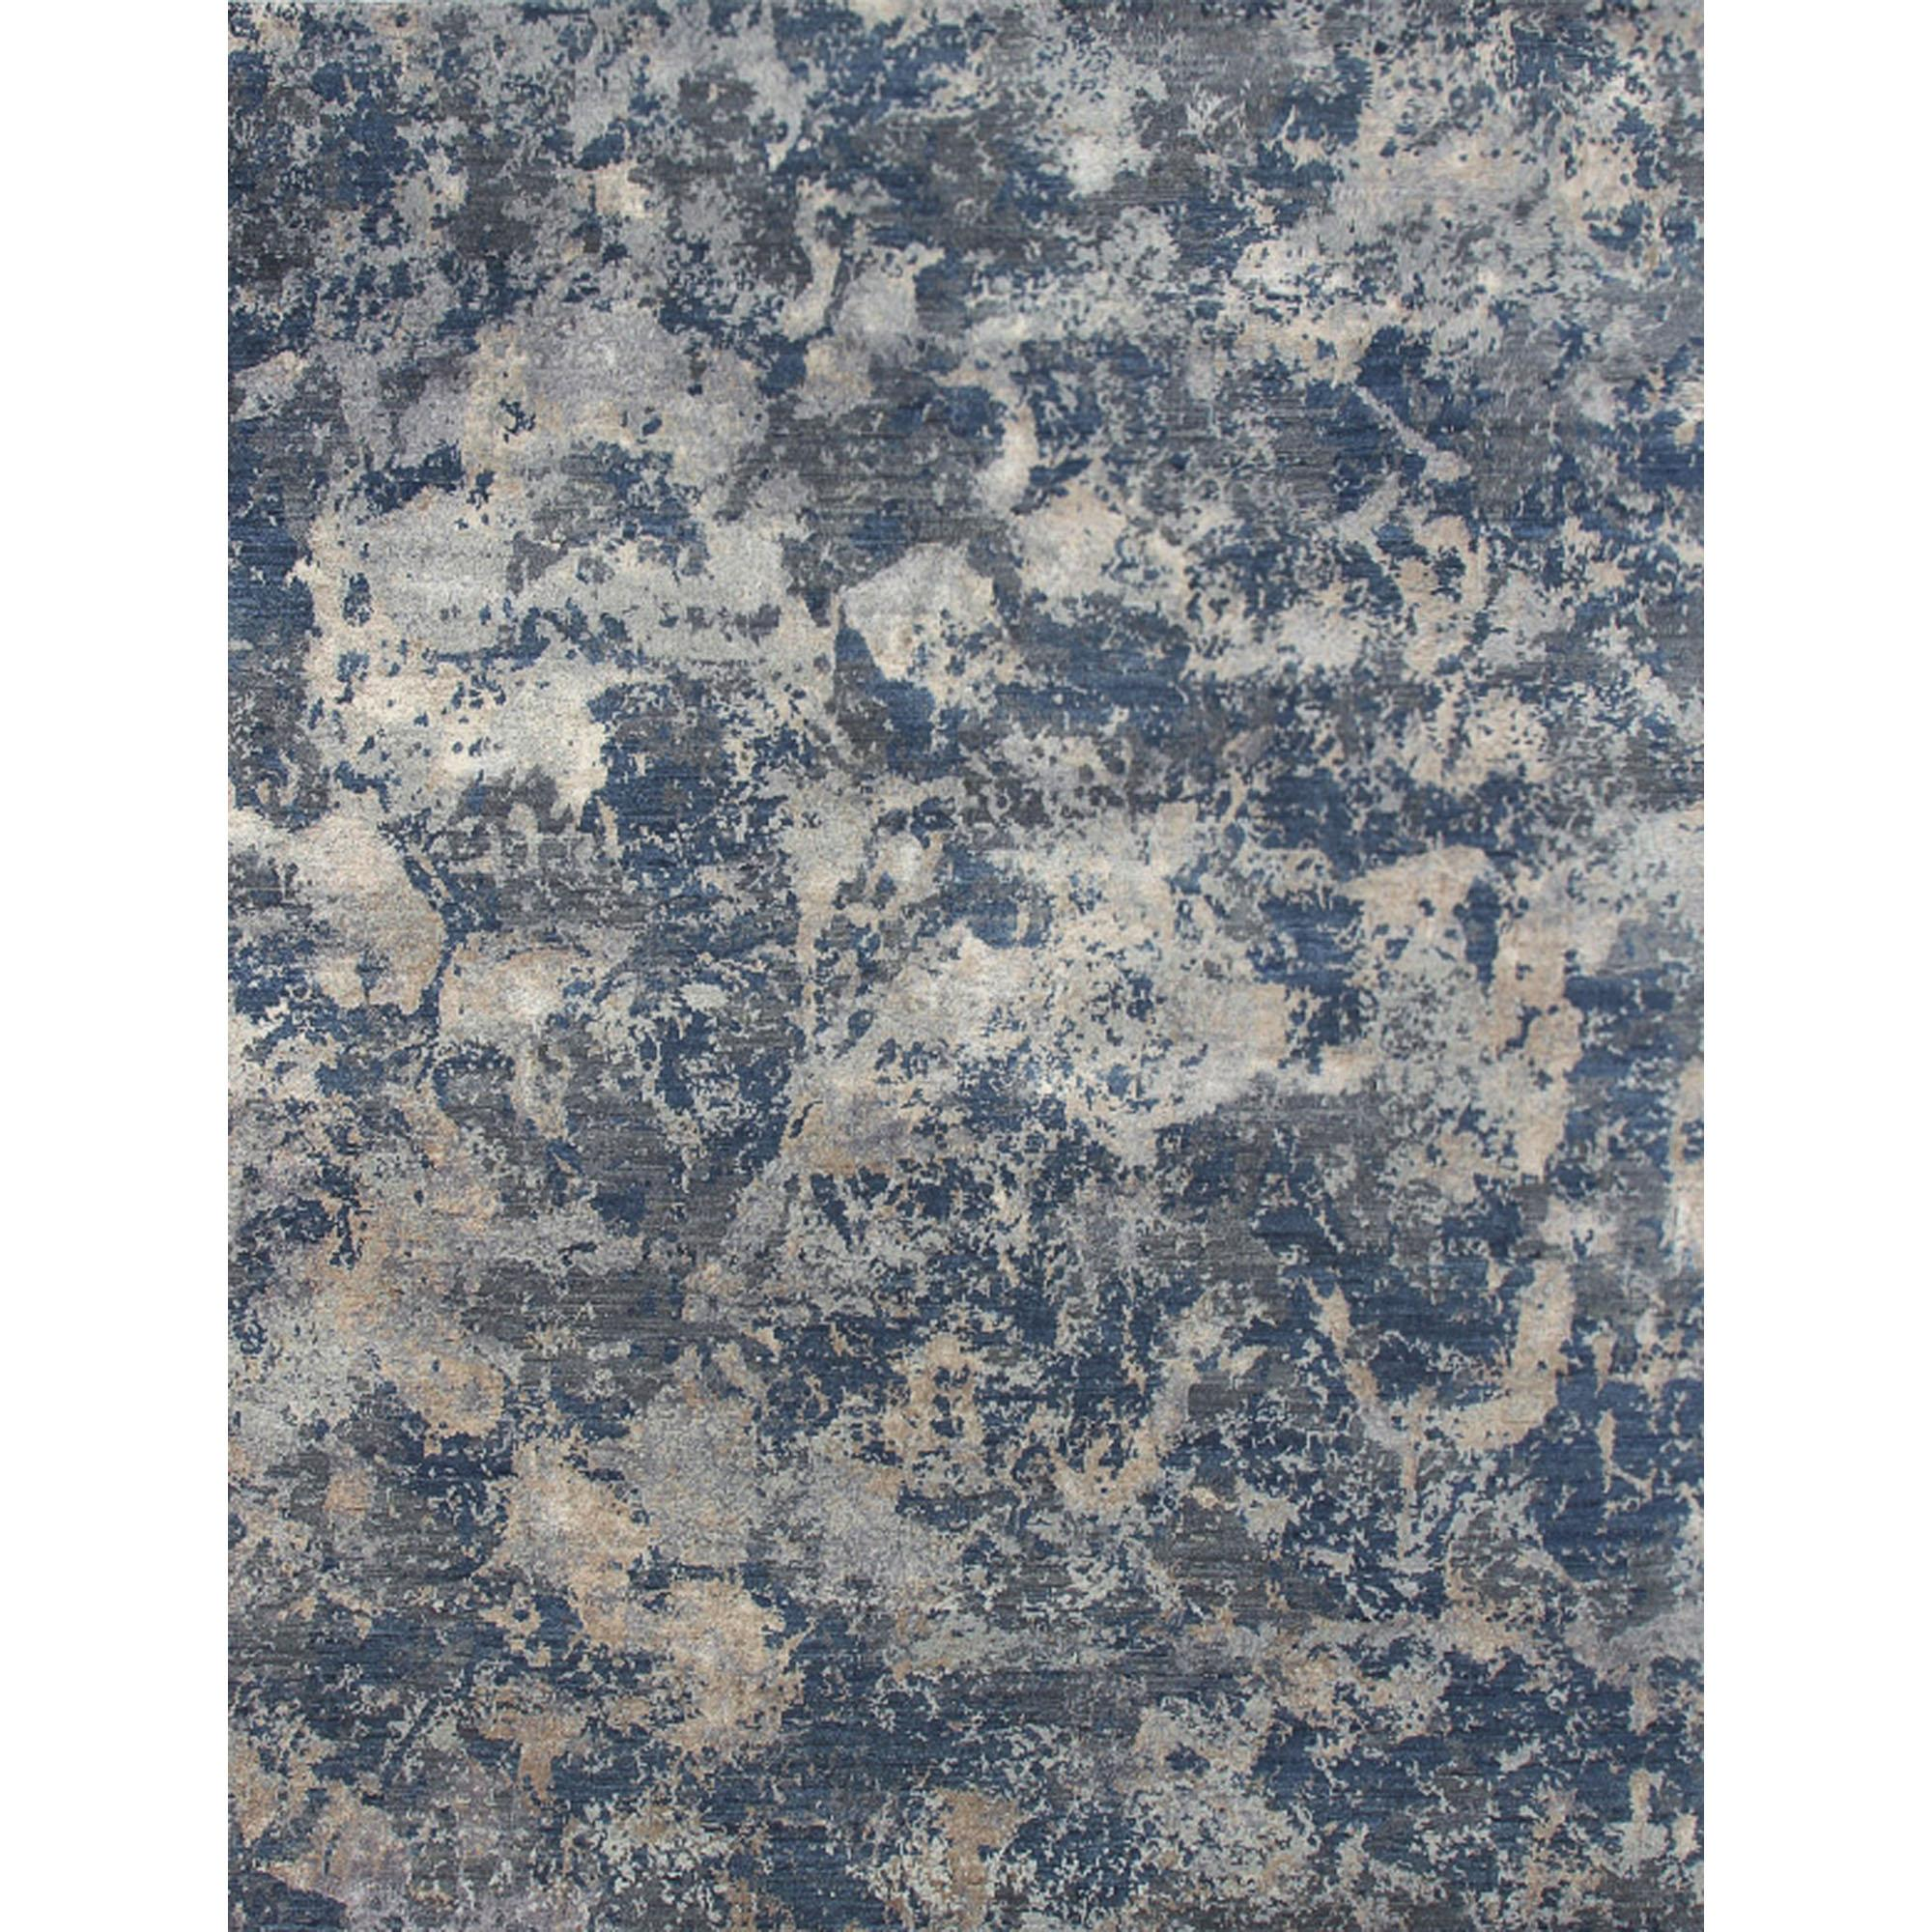 JAIPUR Rugs Chaos Theory By Kavi 5.6 x 8 Rug - Item Number: RUG117591